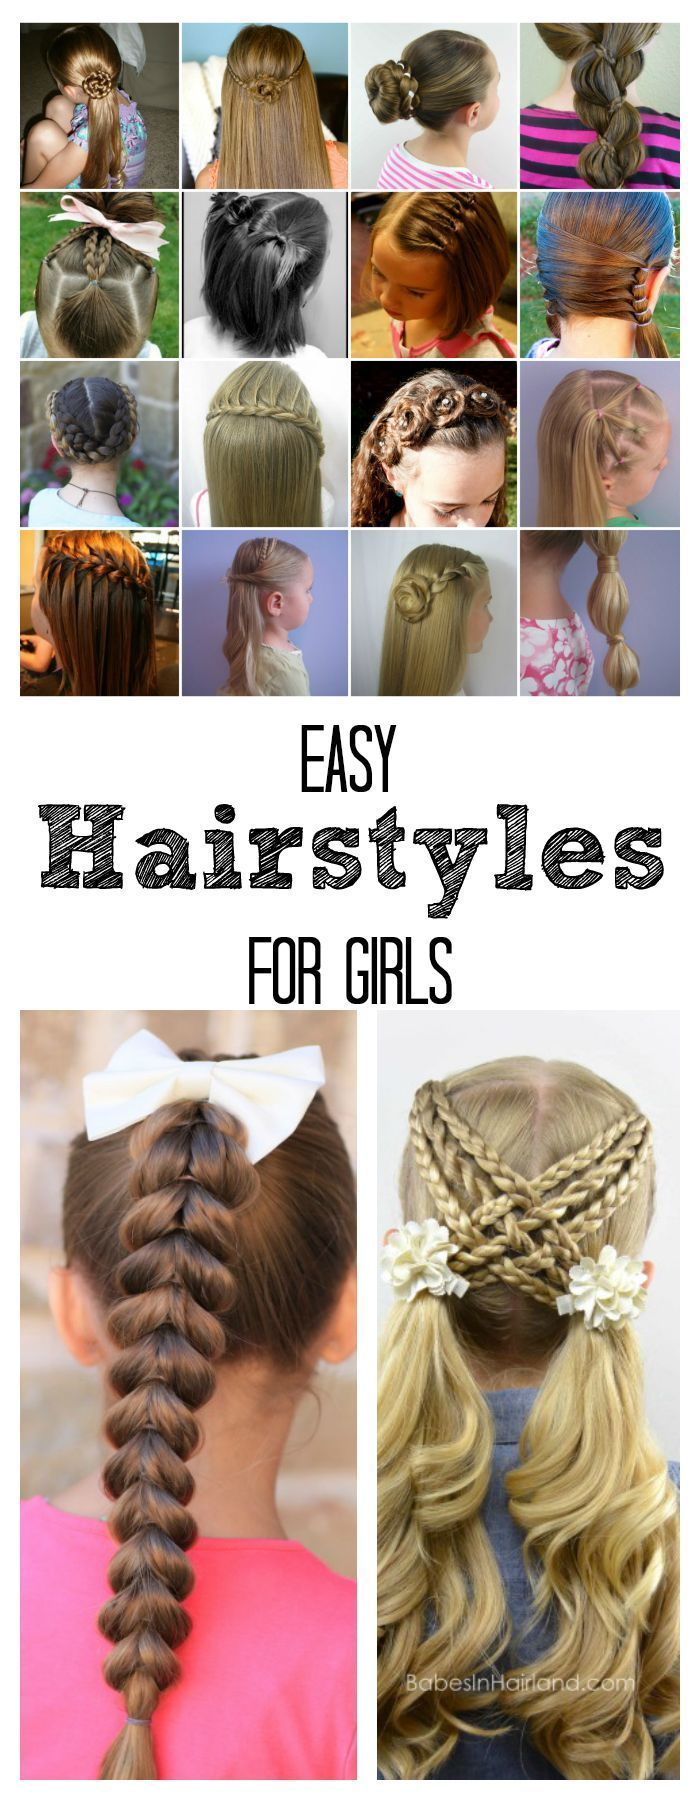 Easy hairstyles for girls hairstyles for girls fun hairstyles and